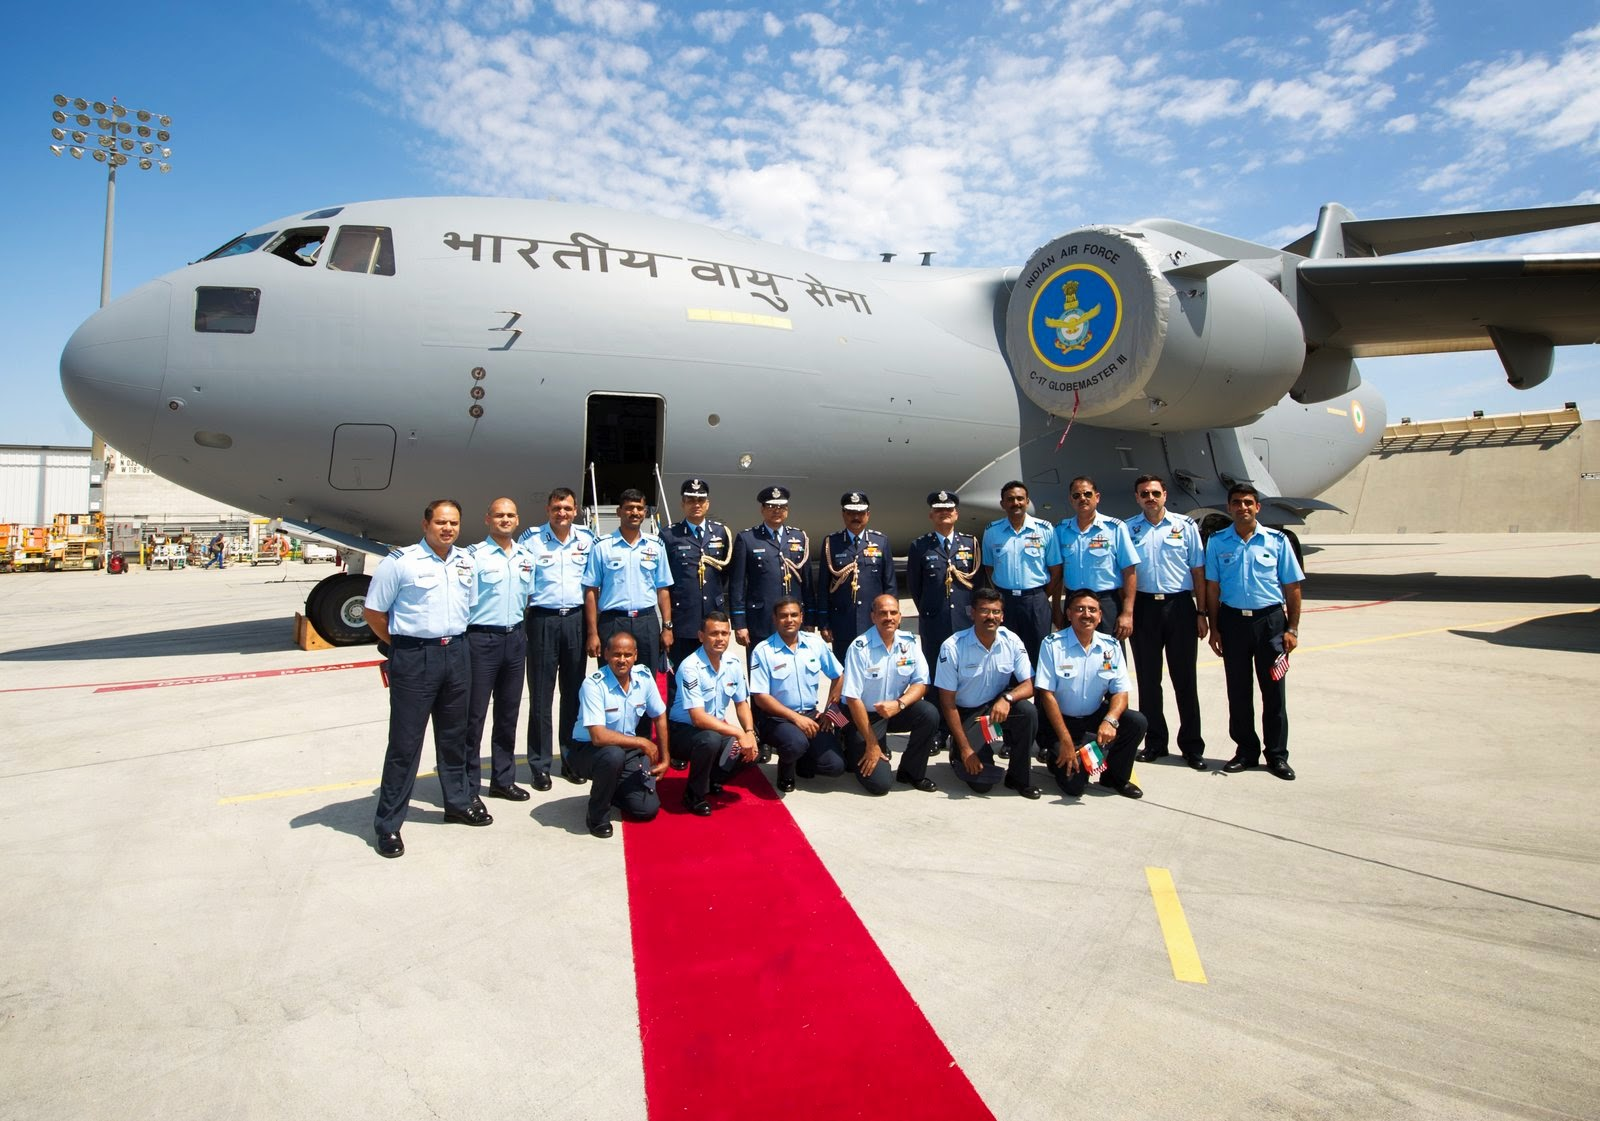 helicopter training in india with 7 Interesting Facts About Indian Air Force Academy on Pilot in addition Cancun Yucatan Peninsula Quintana Roo Mexico as well AirSeaRescue together with Design together with 10 Rules For Workplace Safety.